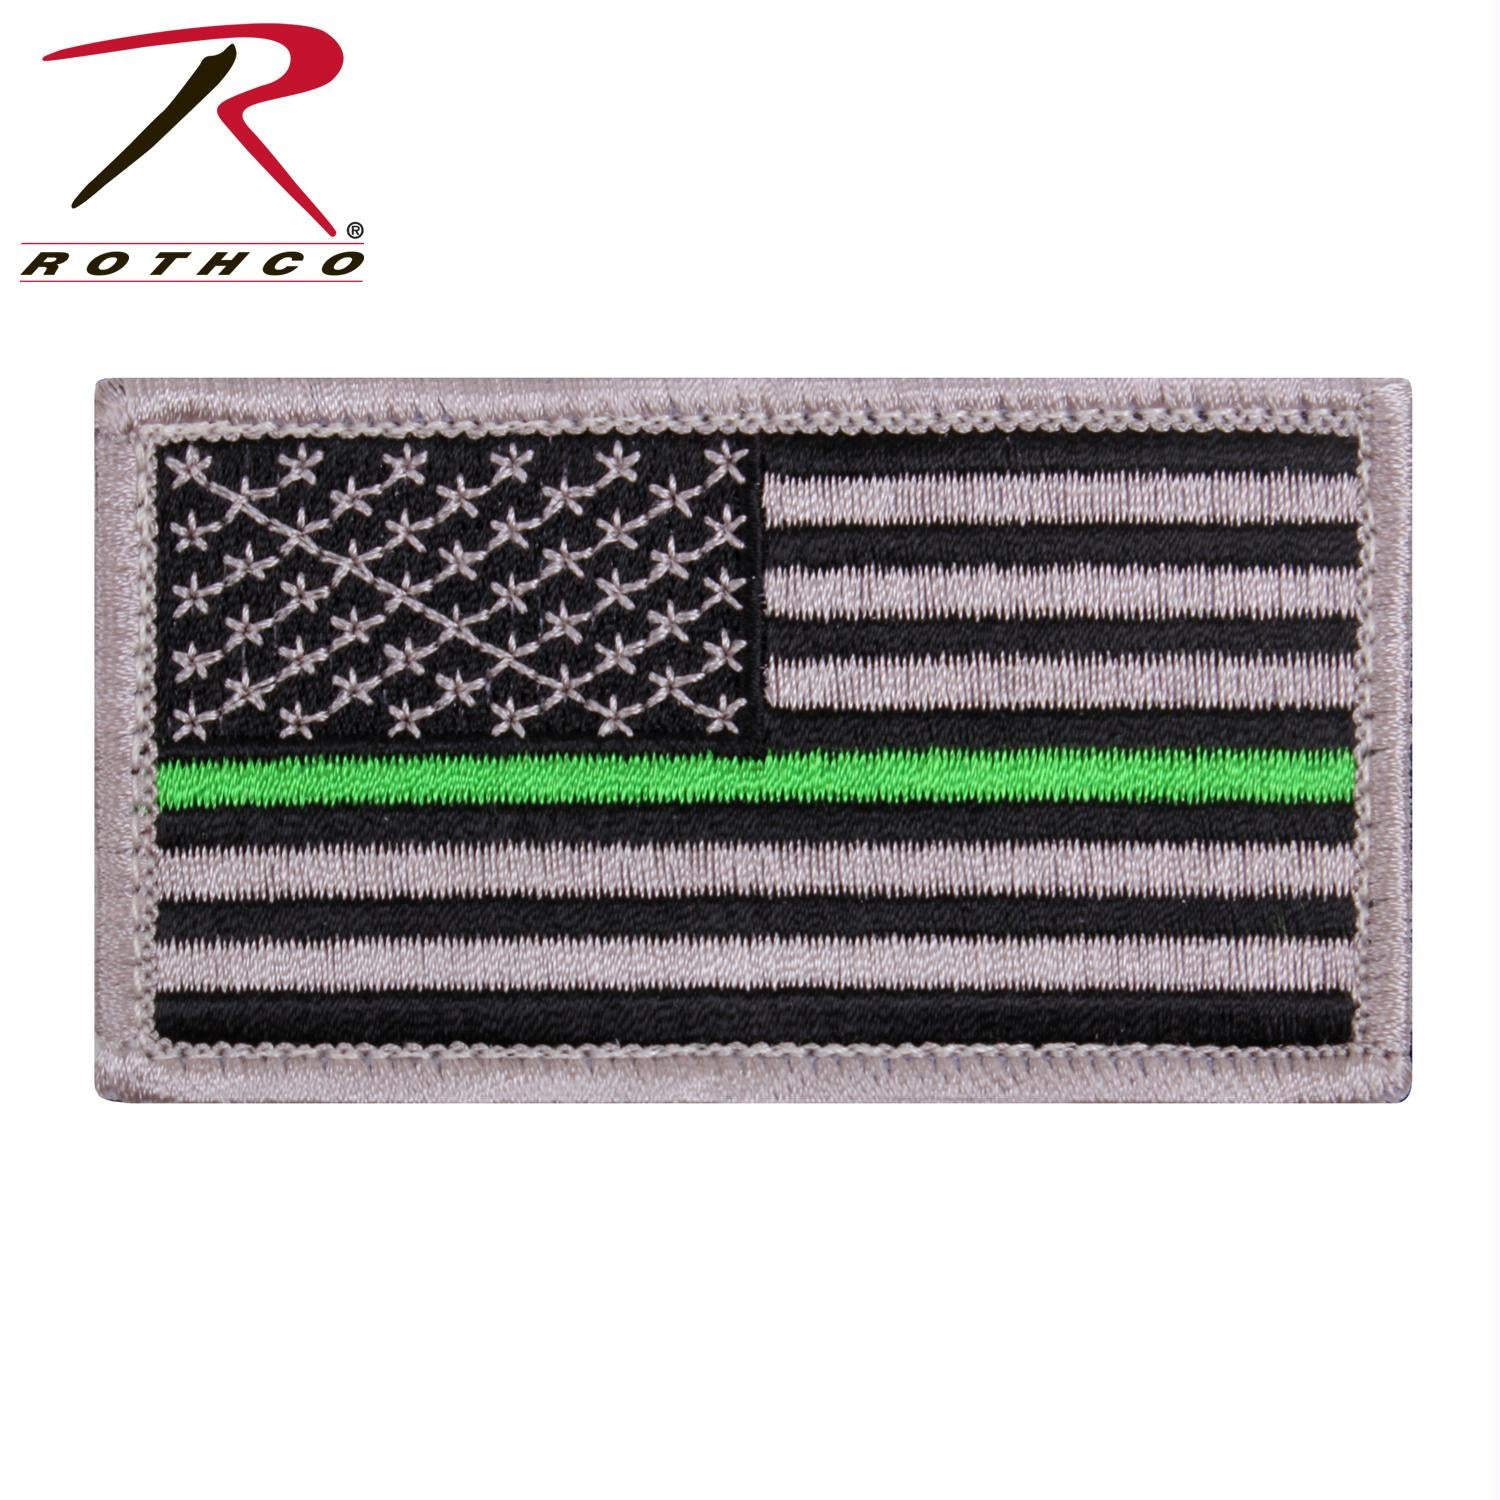 Rothco Thin Green Line US Flag Patch - Black / Silver / One Size